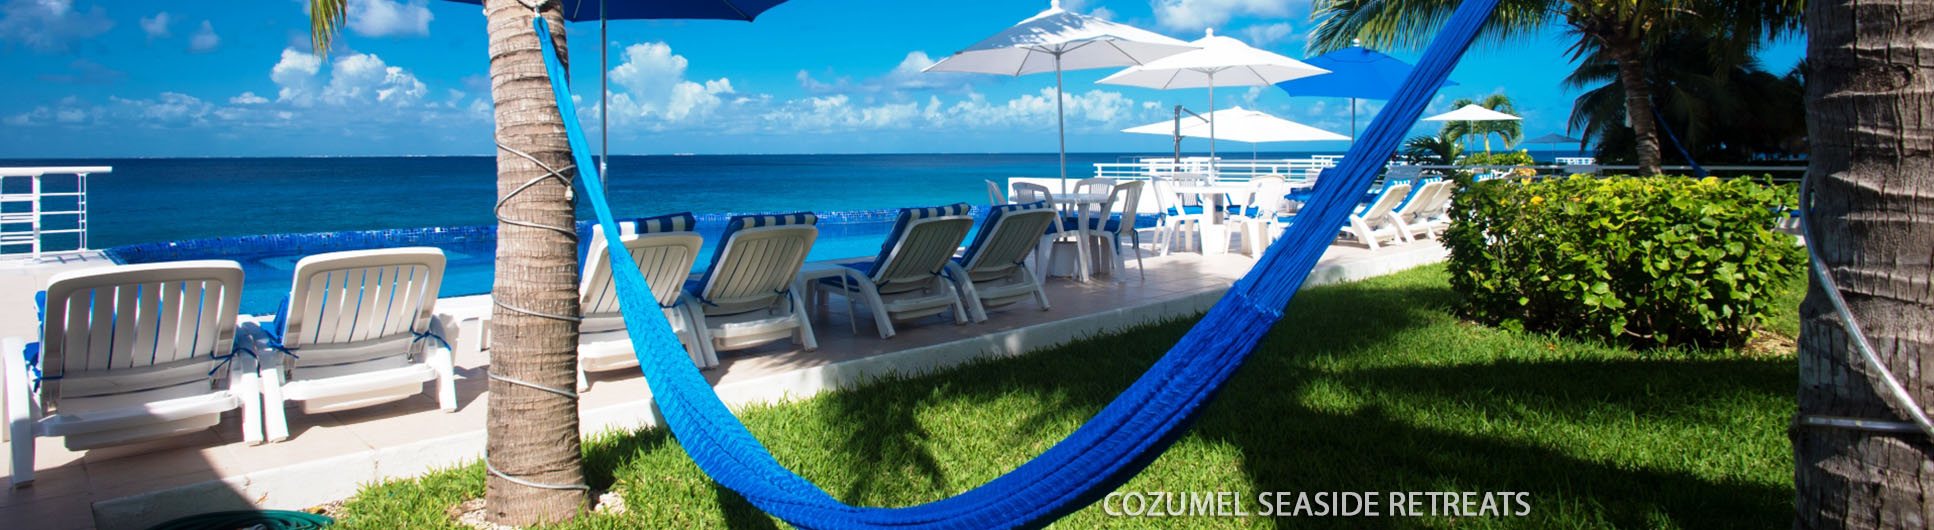 Contact Cozumel Seaside Retreats